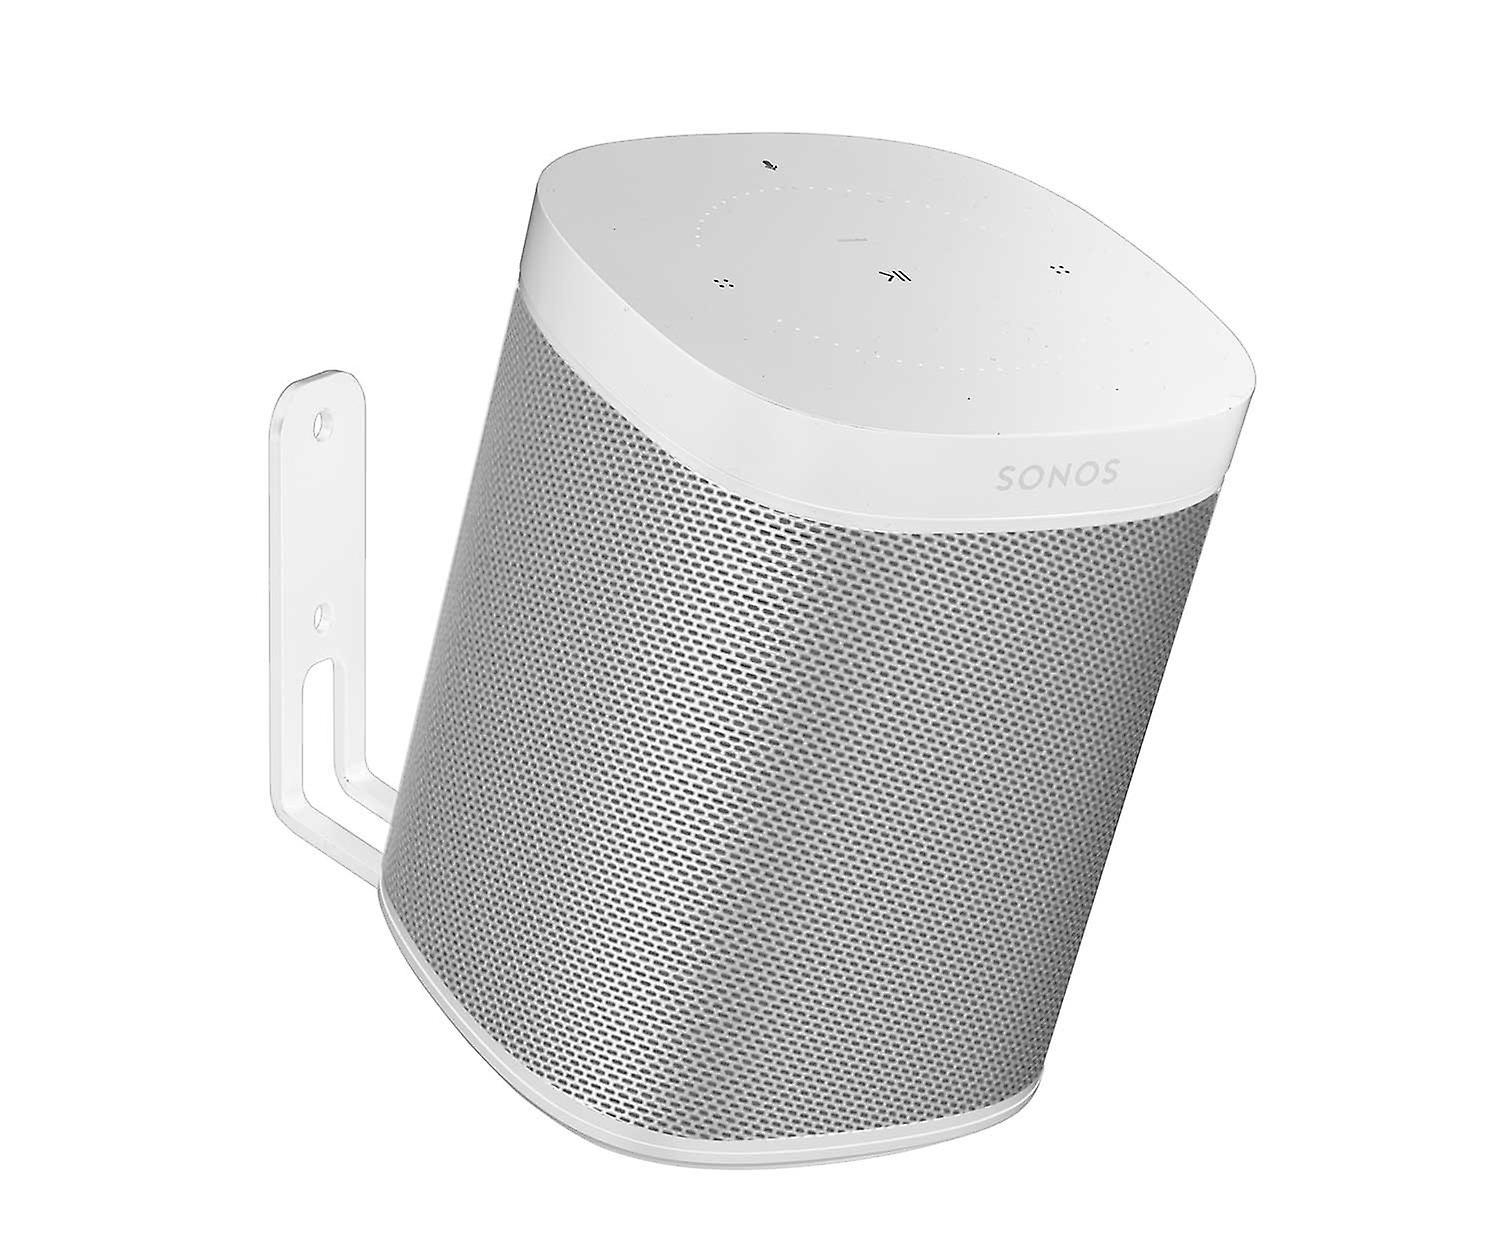 Vebos wall mount Sonos One SL white 20 degrees